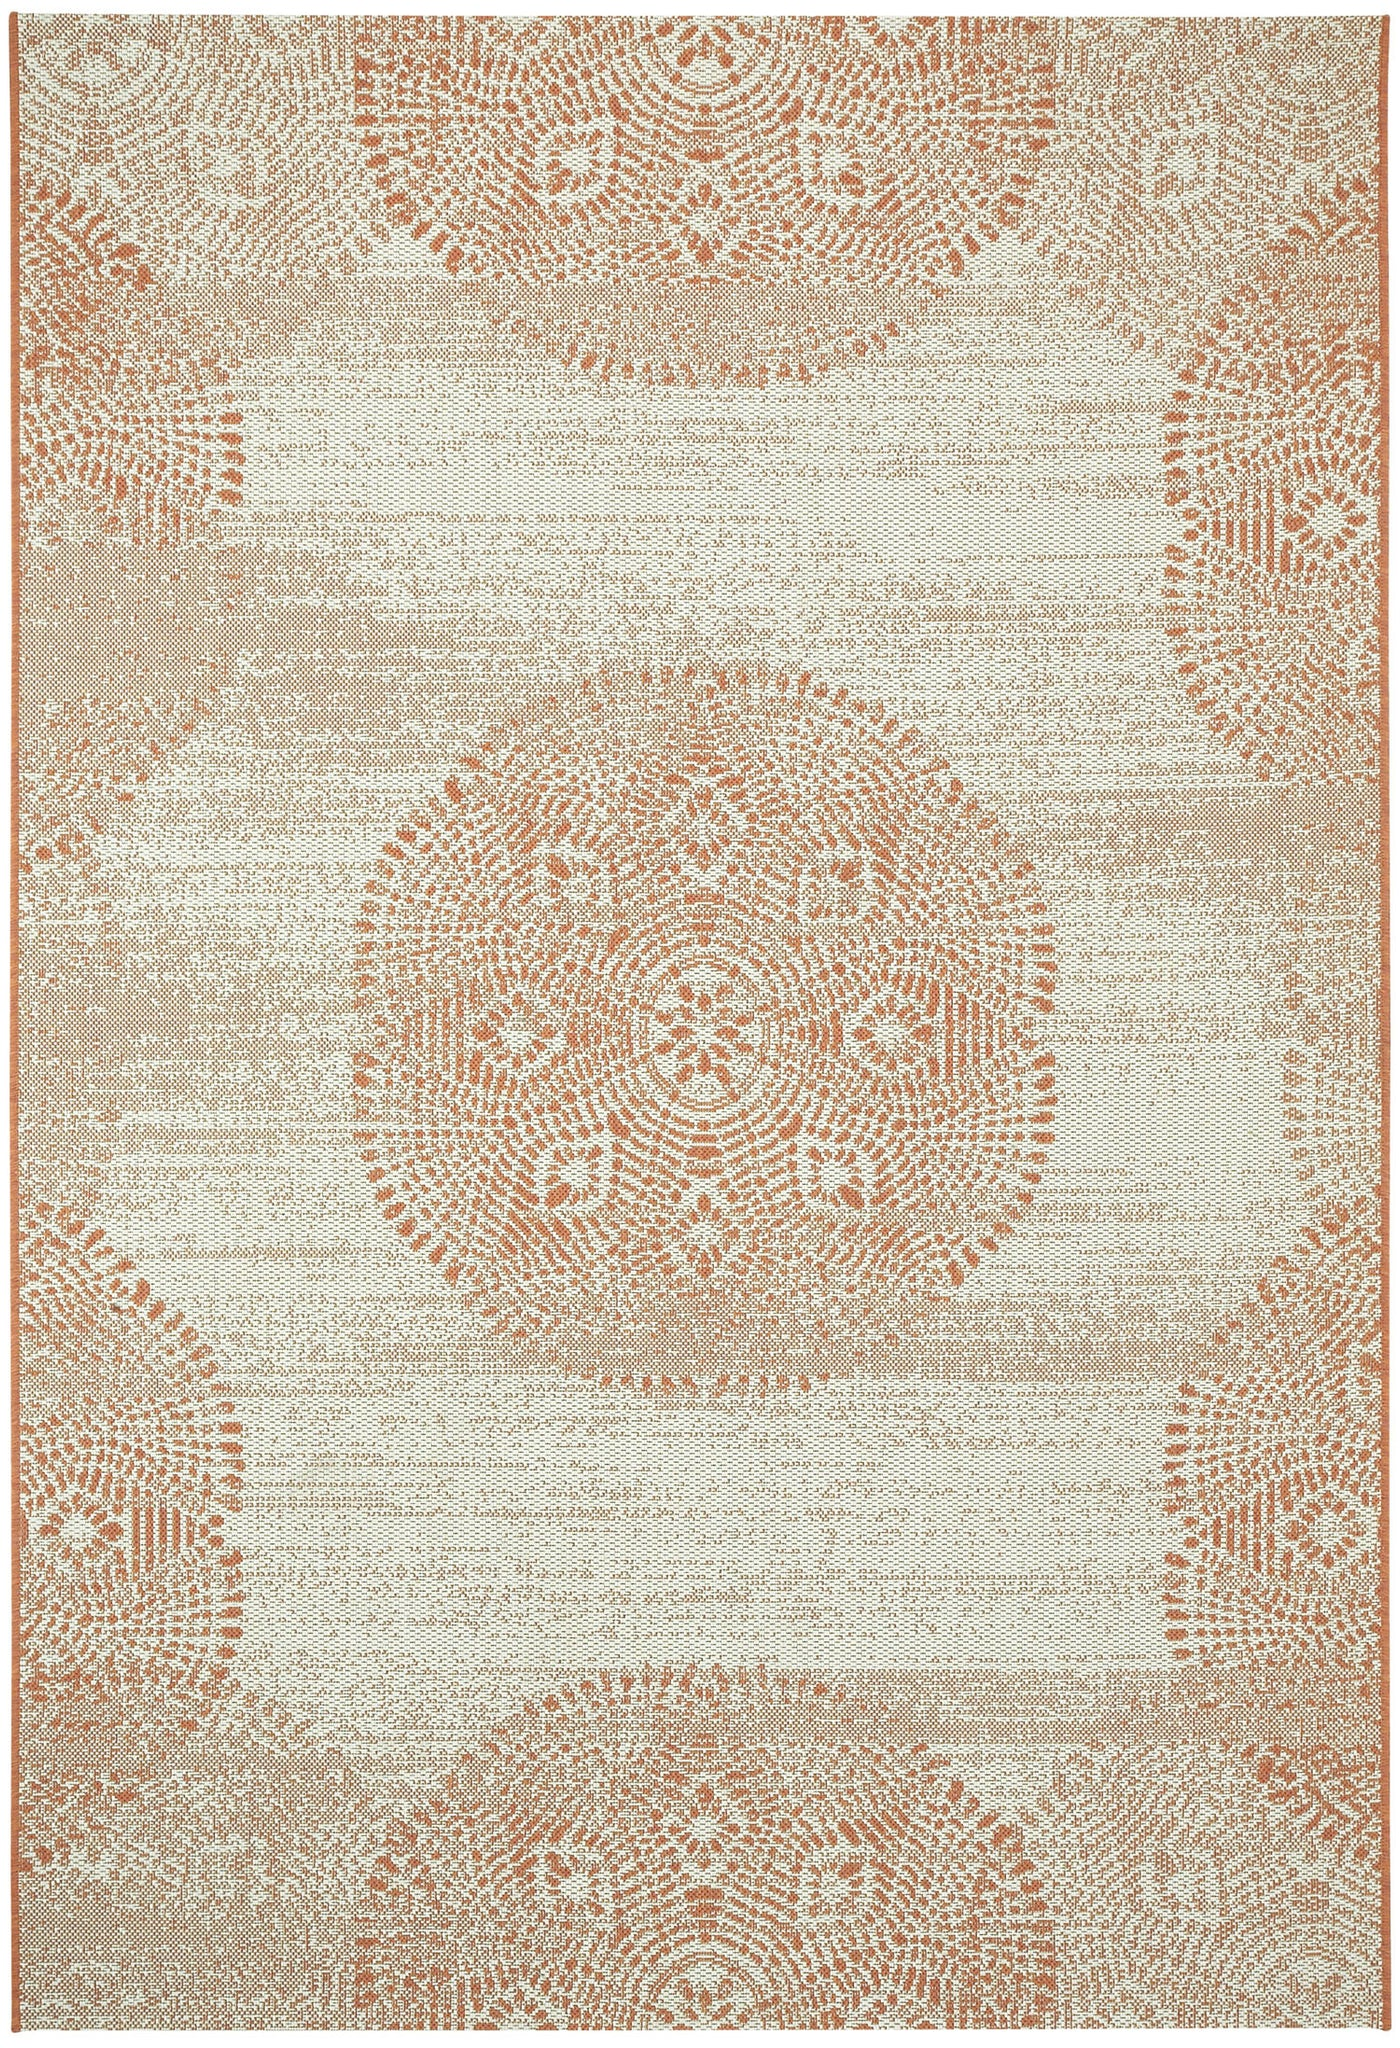 Capel Elsinore Mandala 4732 Cinnamon 825 Area Rug by Genevieve Gorder main image